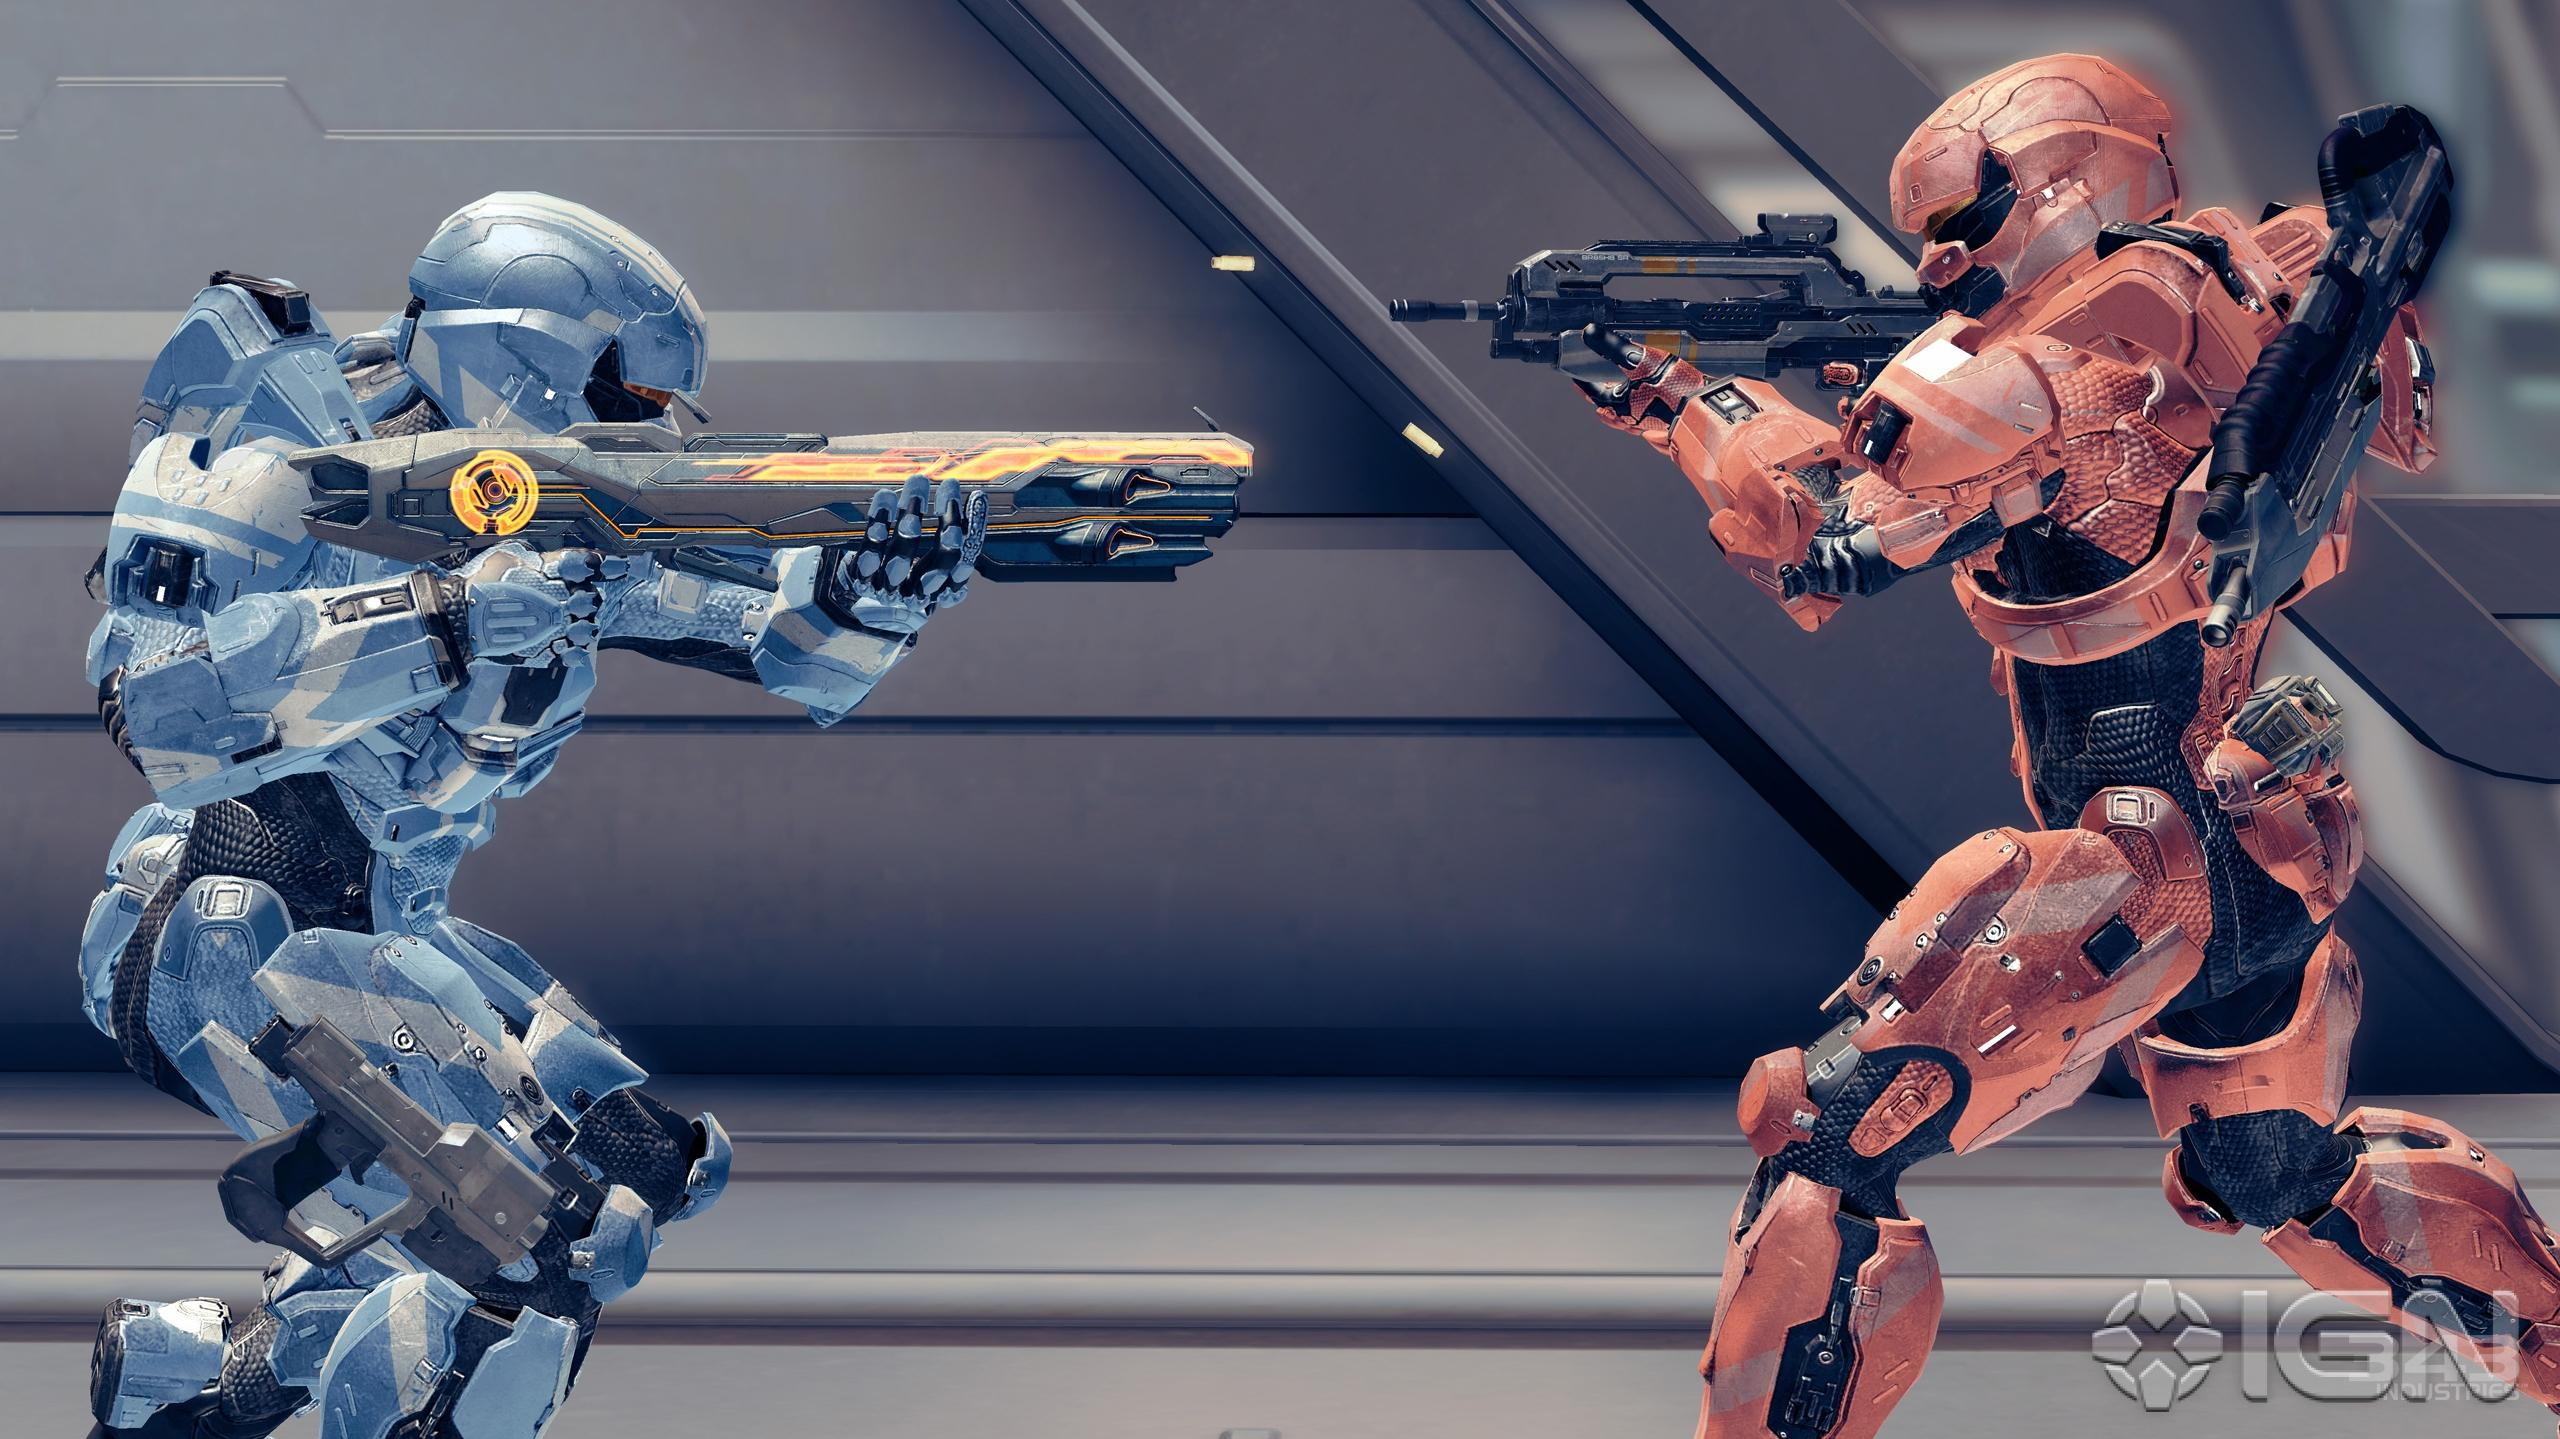 Halo 4 - Infinity Multiplayer Trailer - E3 2012